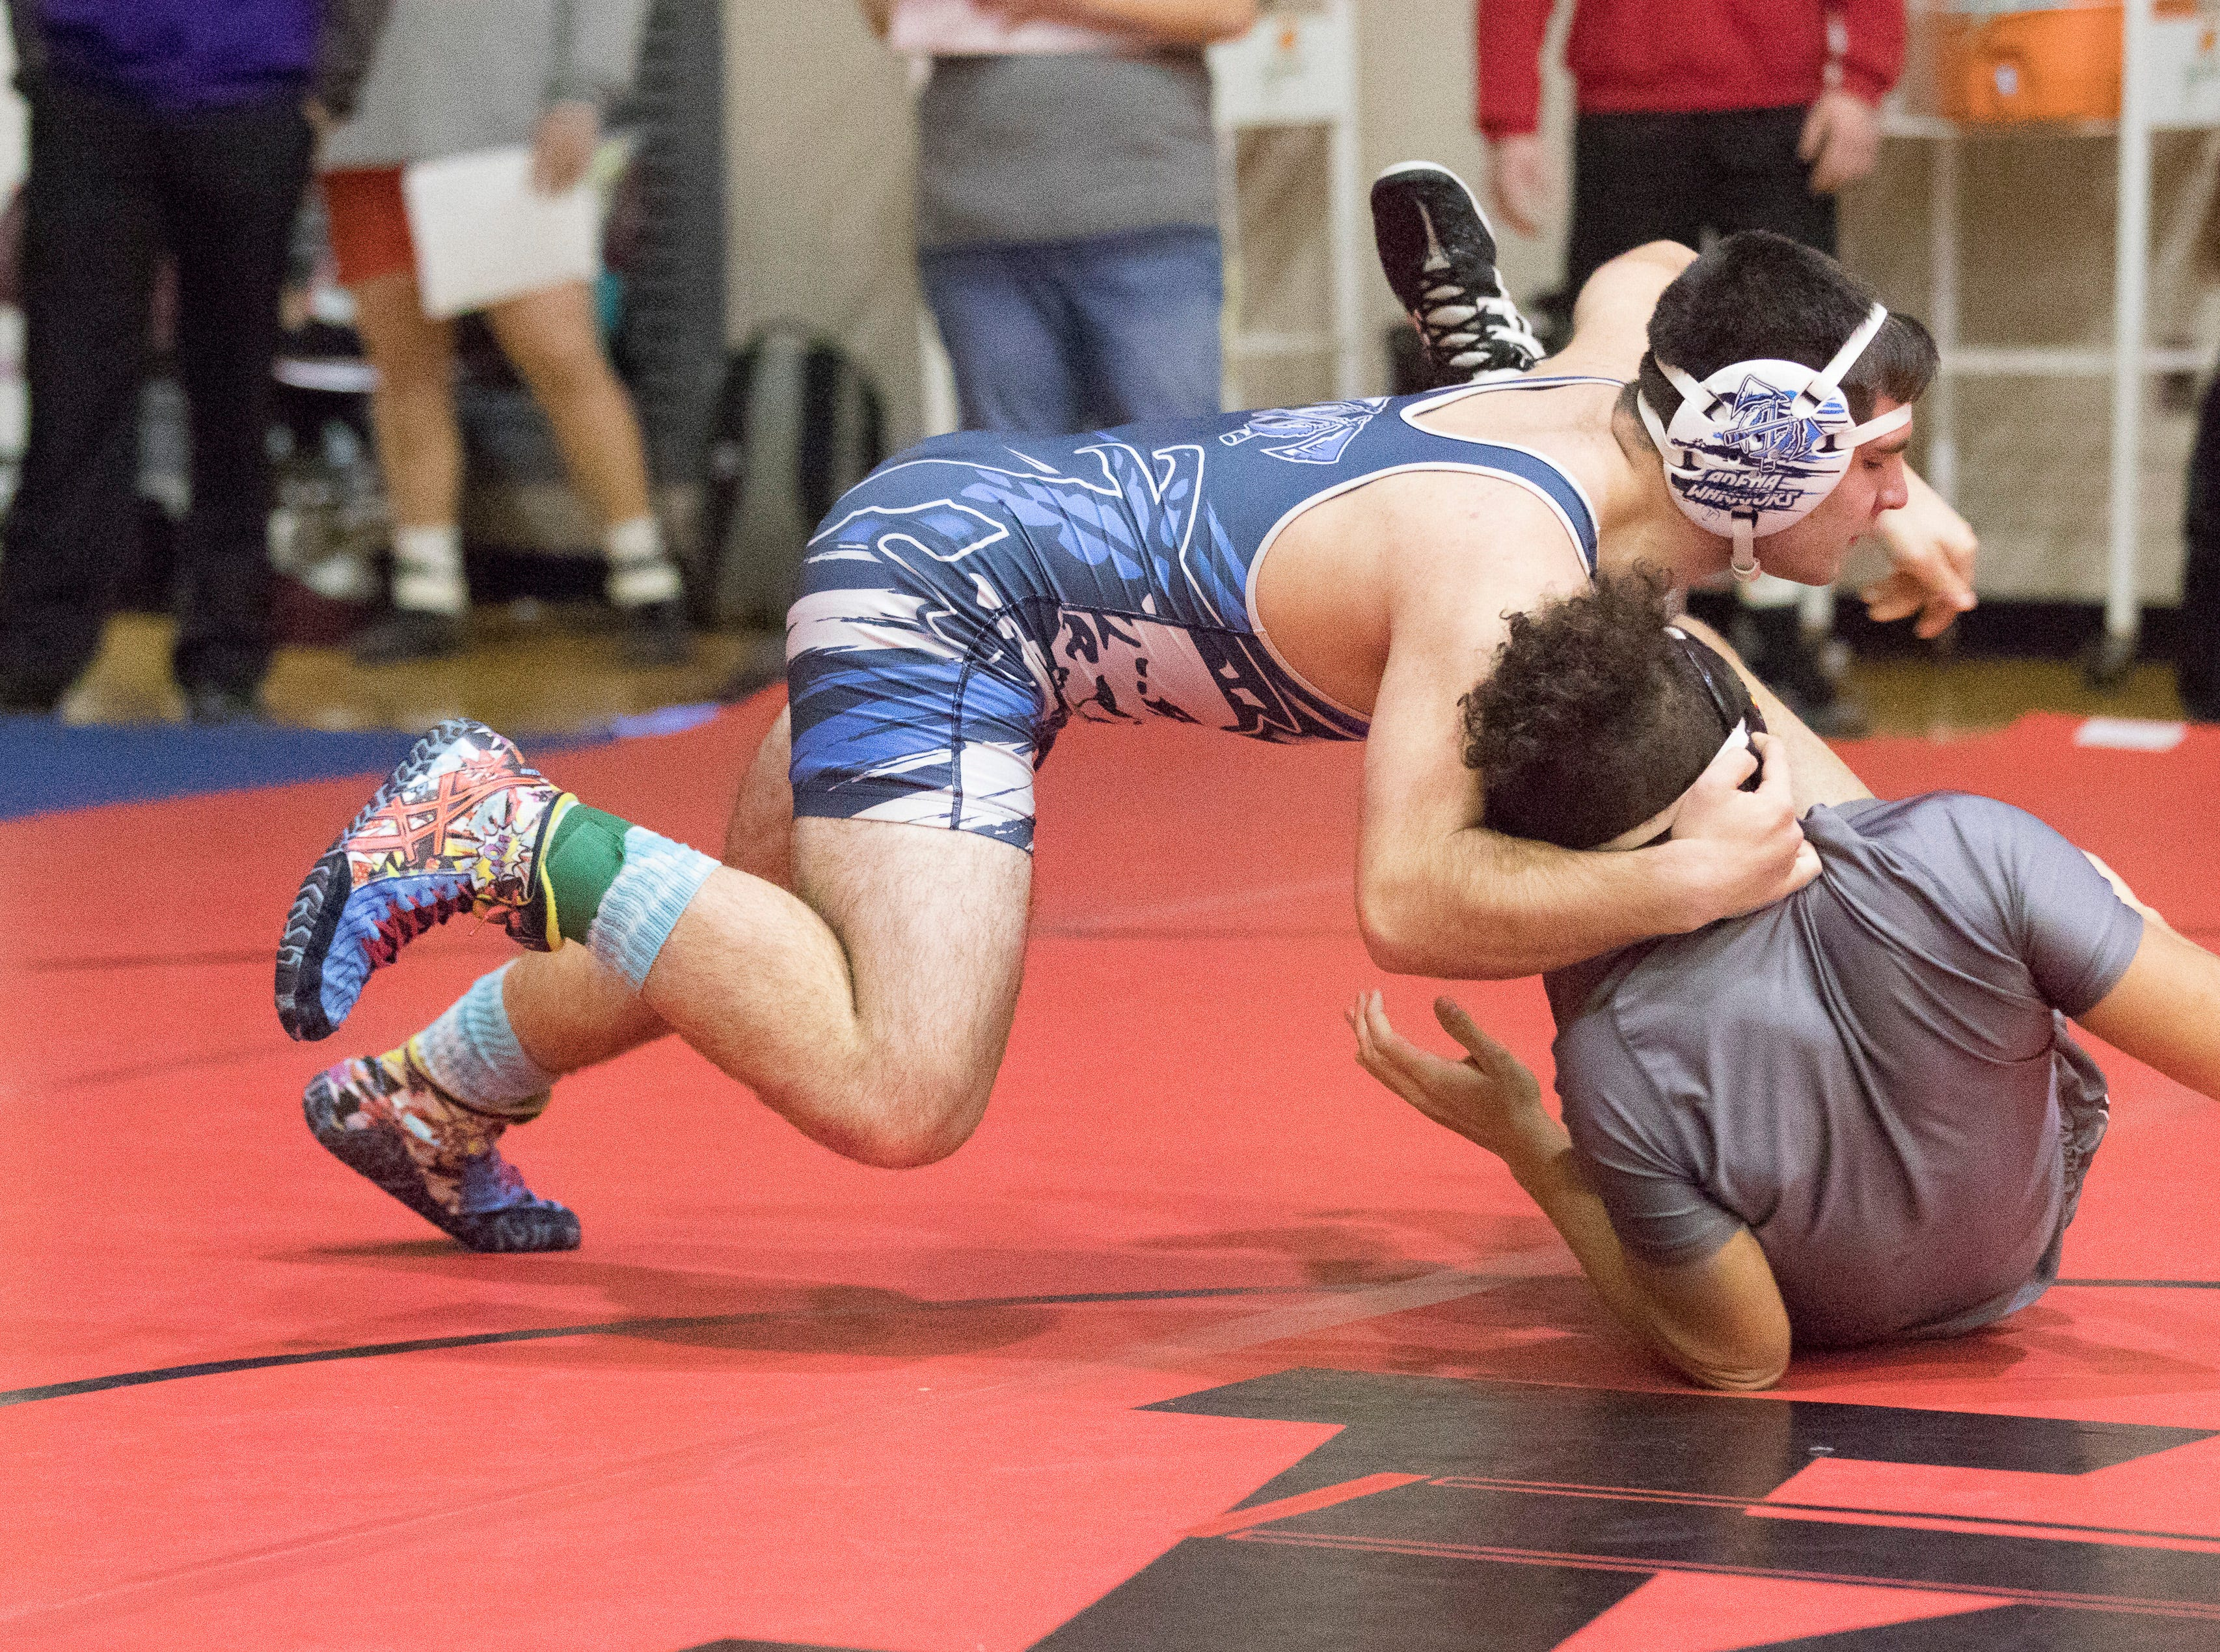 Adena, Unioto, Southeastern, Zane Trace, Waverly, and Westfall wrestling teams compete in the 2018 Spring Street Sports Invitational at Vinton High School on Saturday, December 15, 2018. Westfall wrestling finished third, Zane Trace finished fifth, Adena finished eighth, Southeastern finished 12th, Unioto finished 16th, and Waverly finished 21st out of 22 teams.